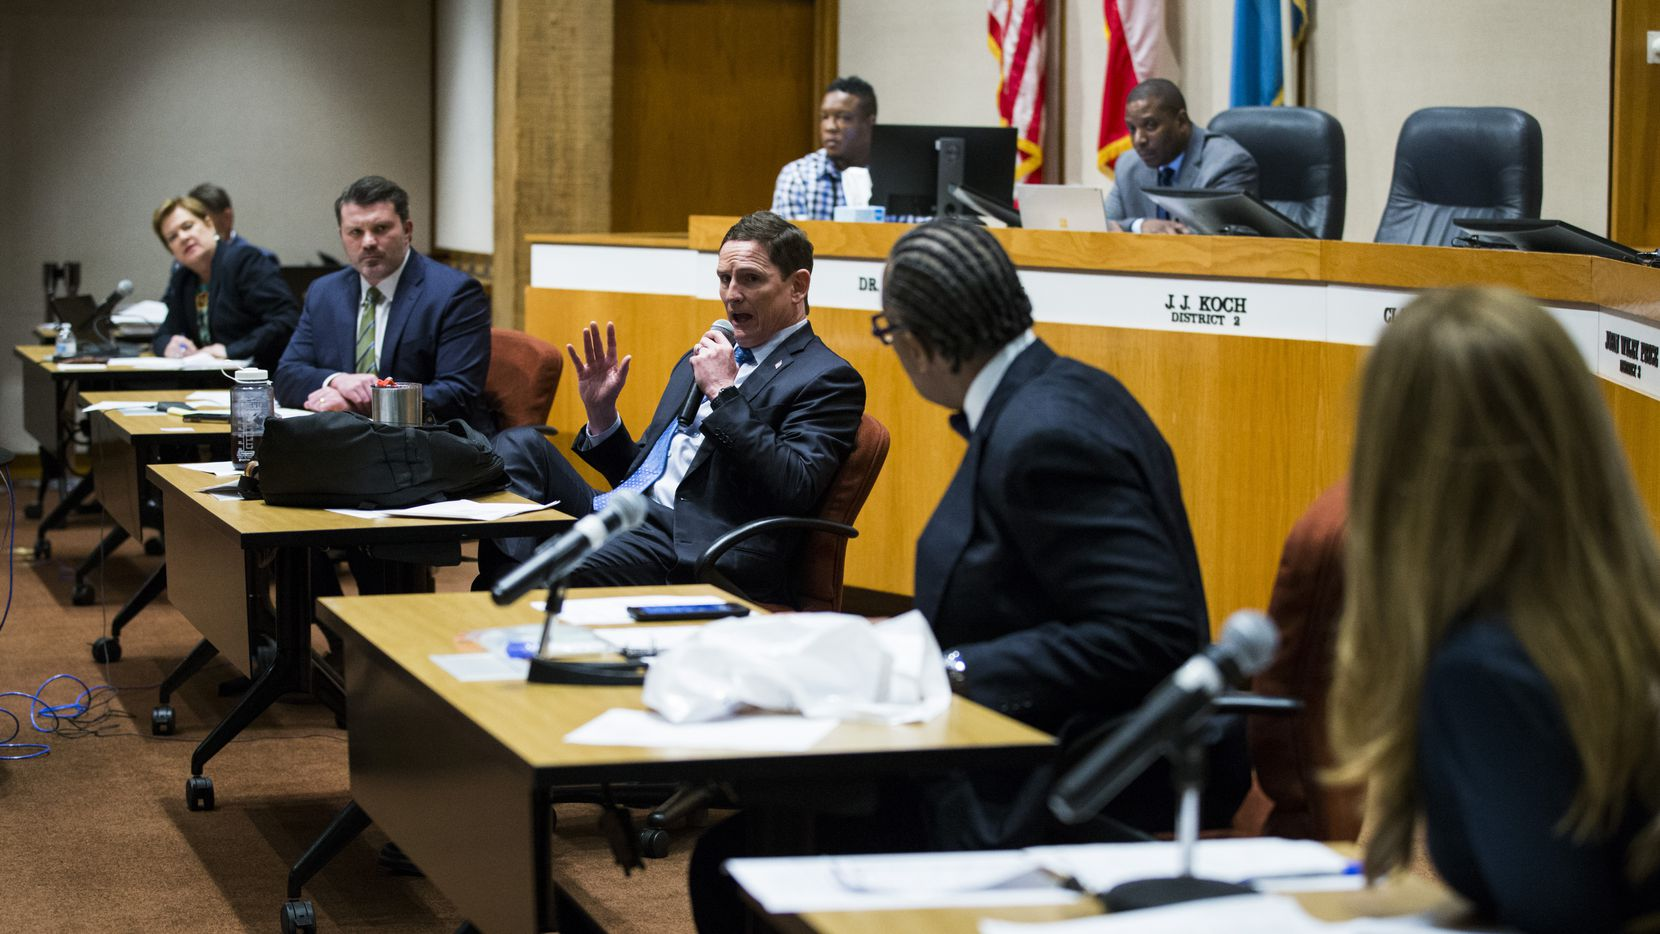 The Dallas County Commissioners Court met March 19 to authorize an extension of Judge Clay Jenkins order. The court met again on Friday to extend the order, which requires individuals to stay home except for critical errands, until April 30. (Ashley Landis/The Dallas Morning News)